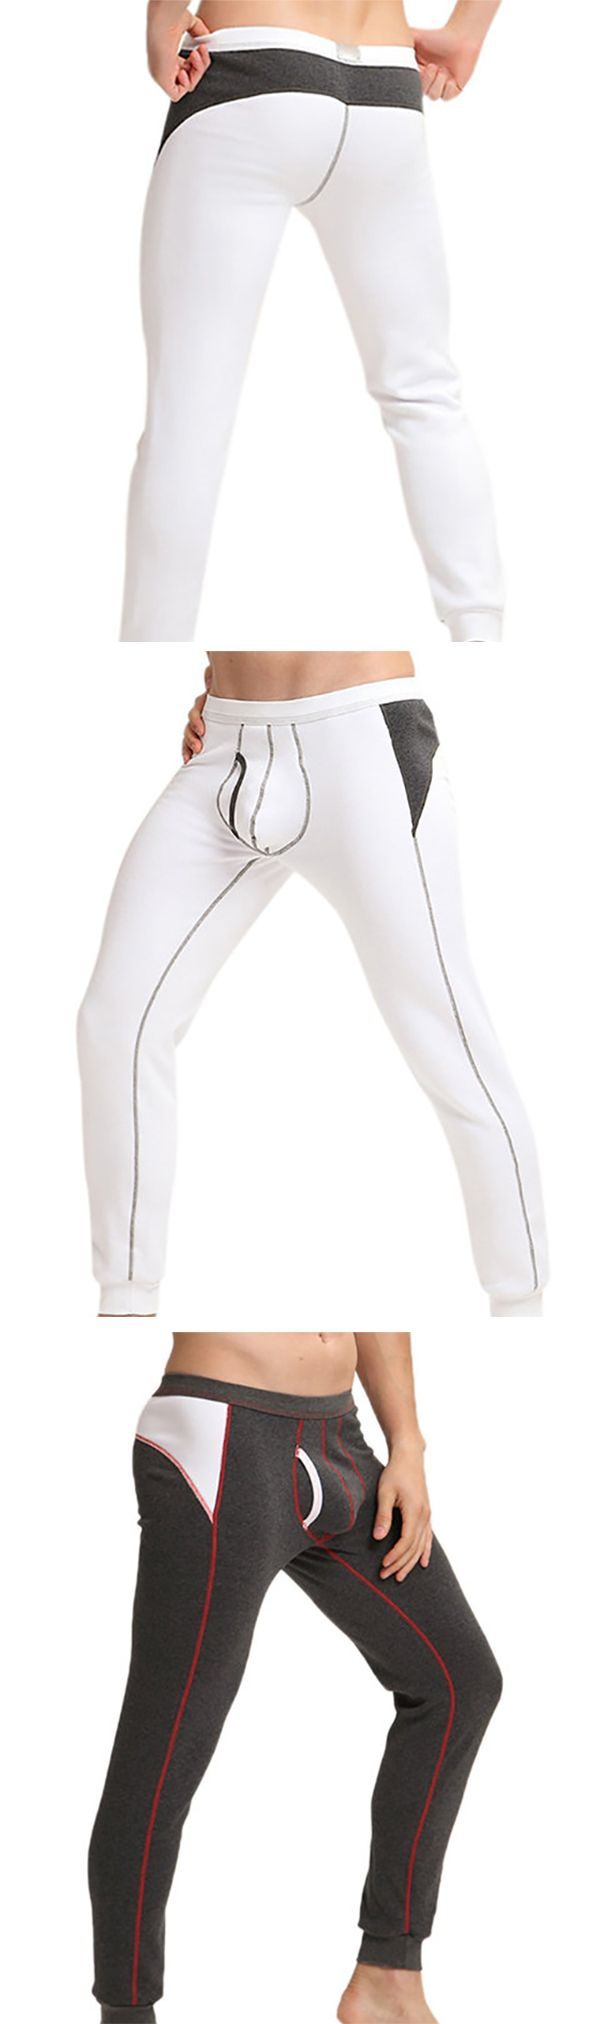 Warm&Casual: Thicken Tight Long Johns /Underwear for #men #fitness